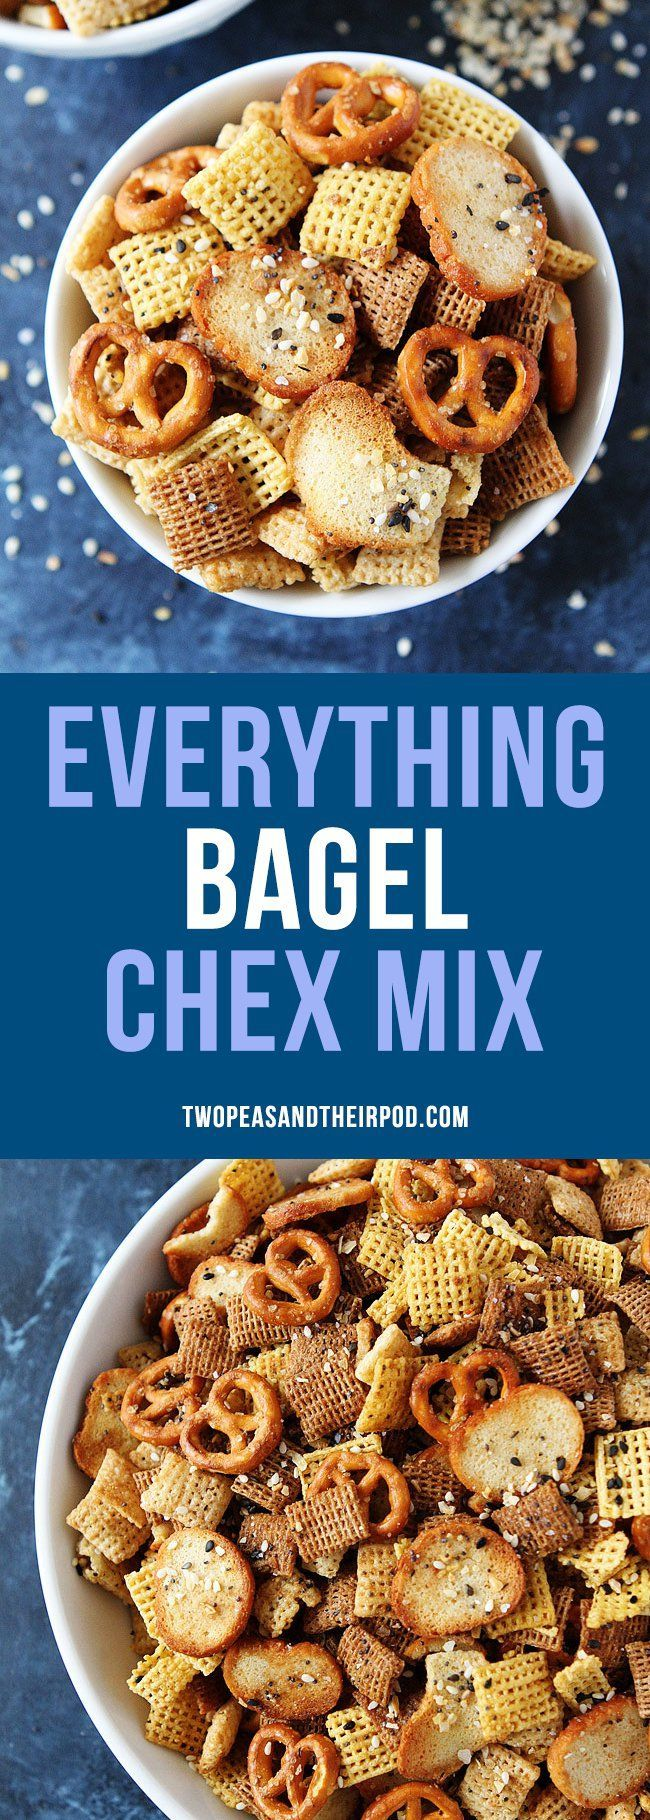 Everything Bagel Chex Mixclassic Chex Party Mix with an